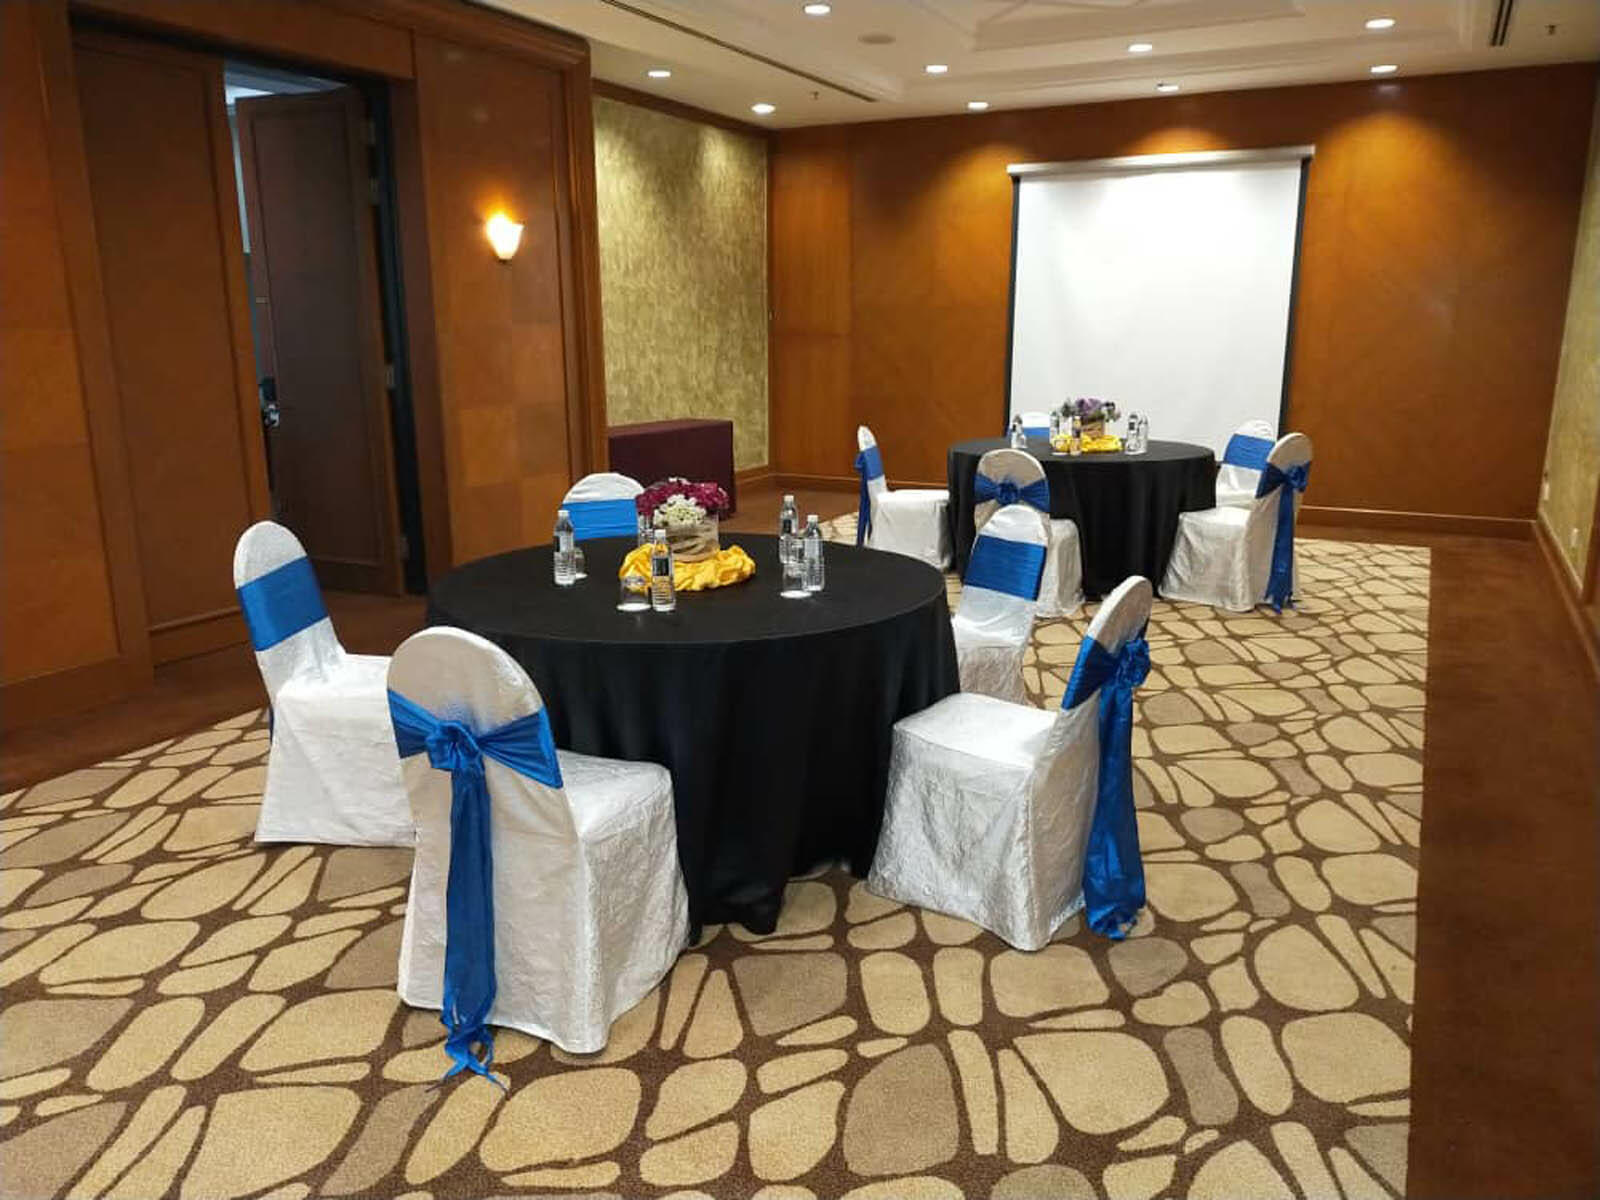 The Sunagi Ujong meeting room arranged with round tables and chairs